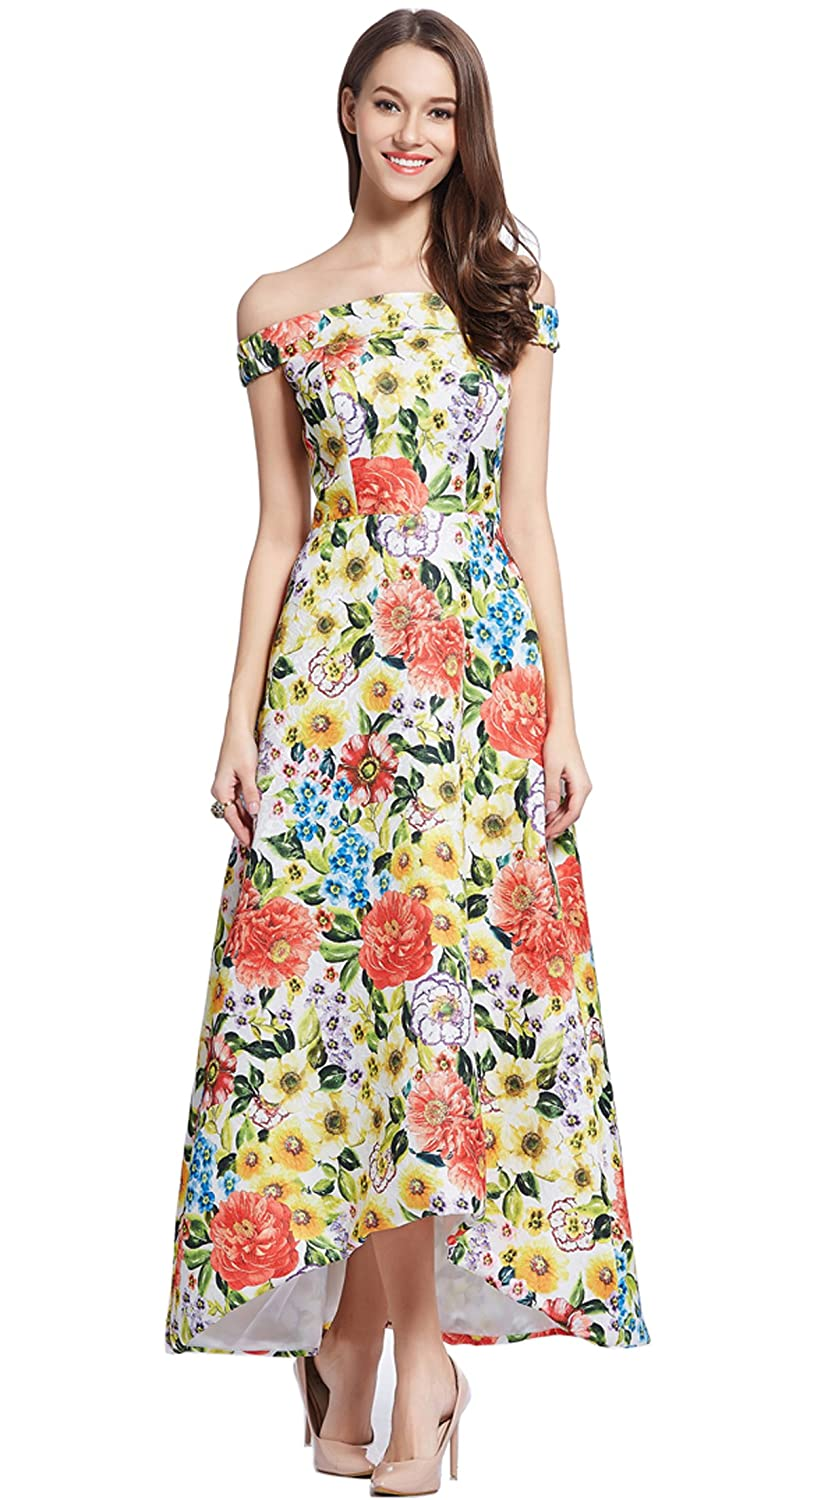 Merope J Womens Boat Neck Floral Maxi Prom Wedding Cocktail Dress